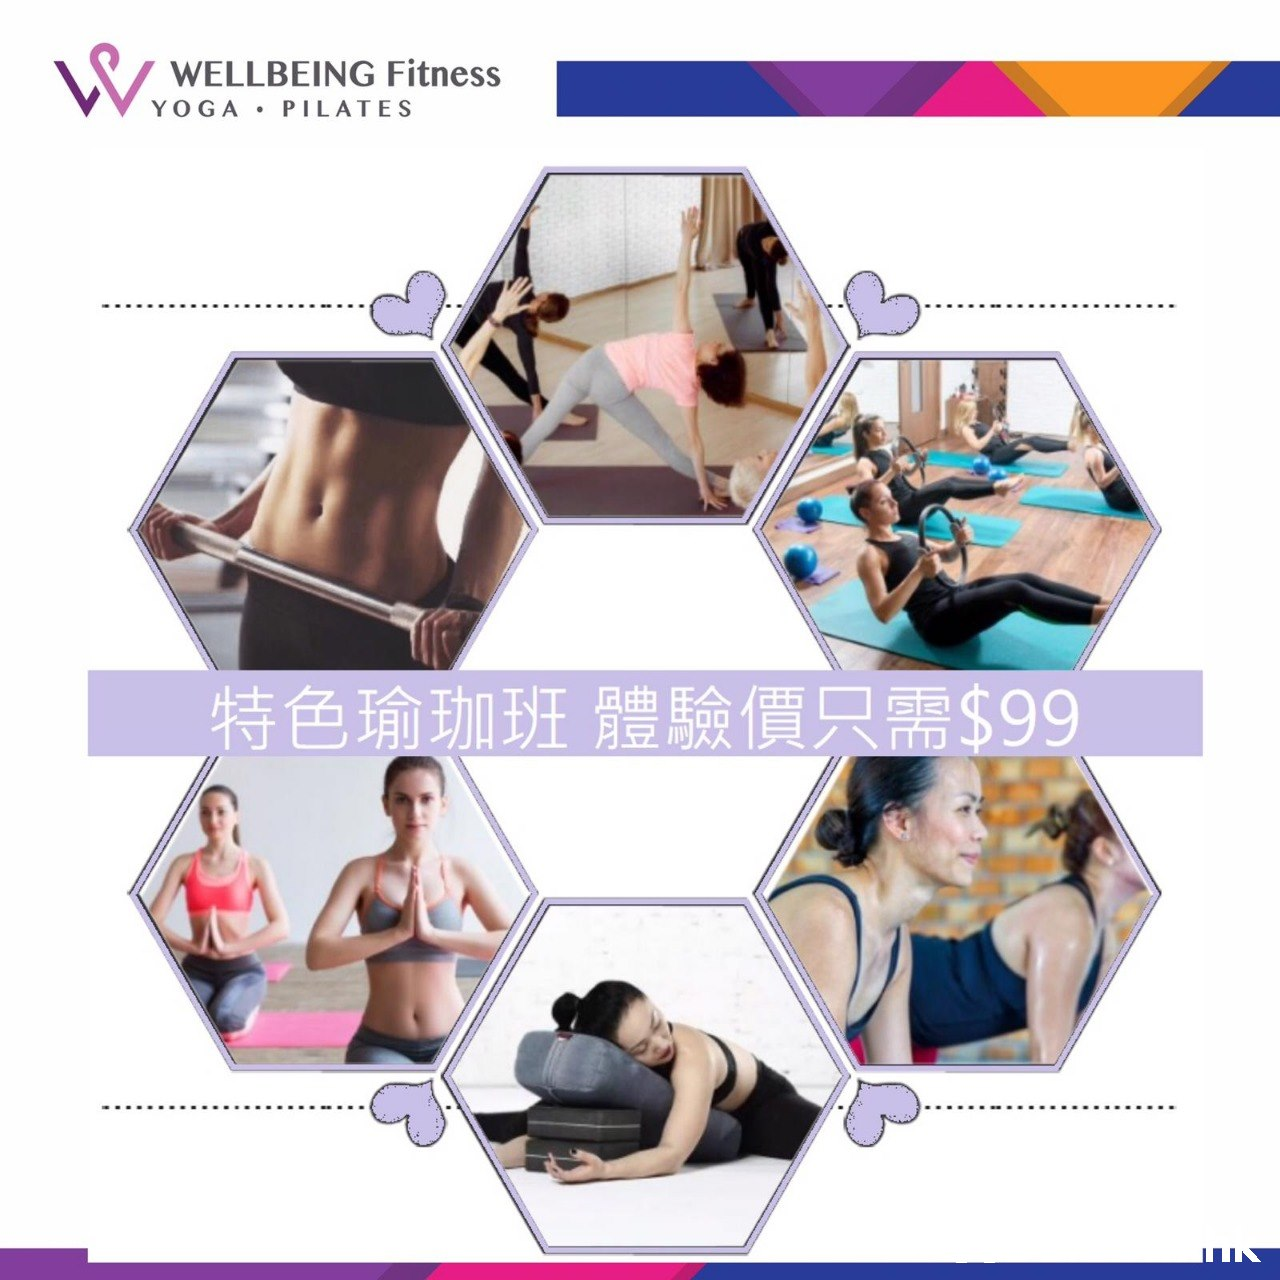 WELLBEING Fitness YOGA PILATES 特色瑜珈班體驗價只需$99  Product,Neck,Room,